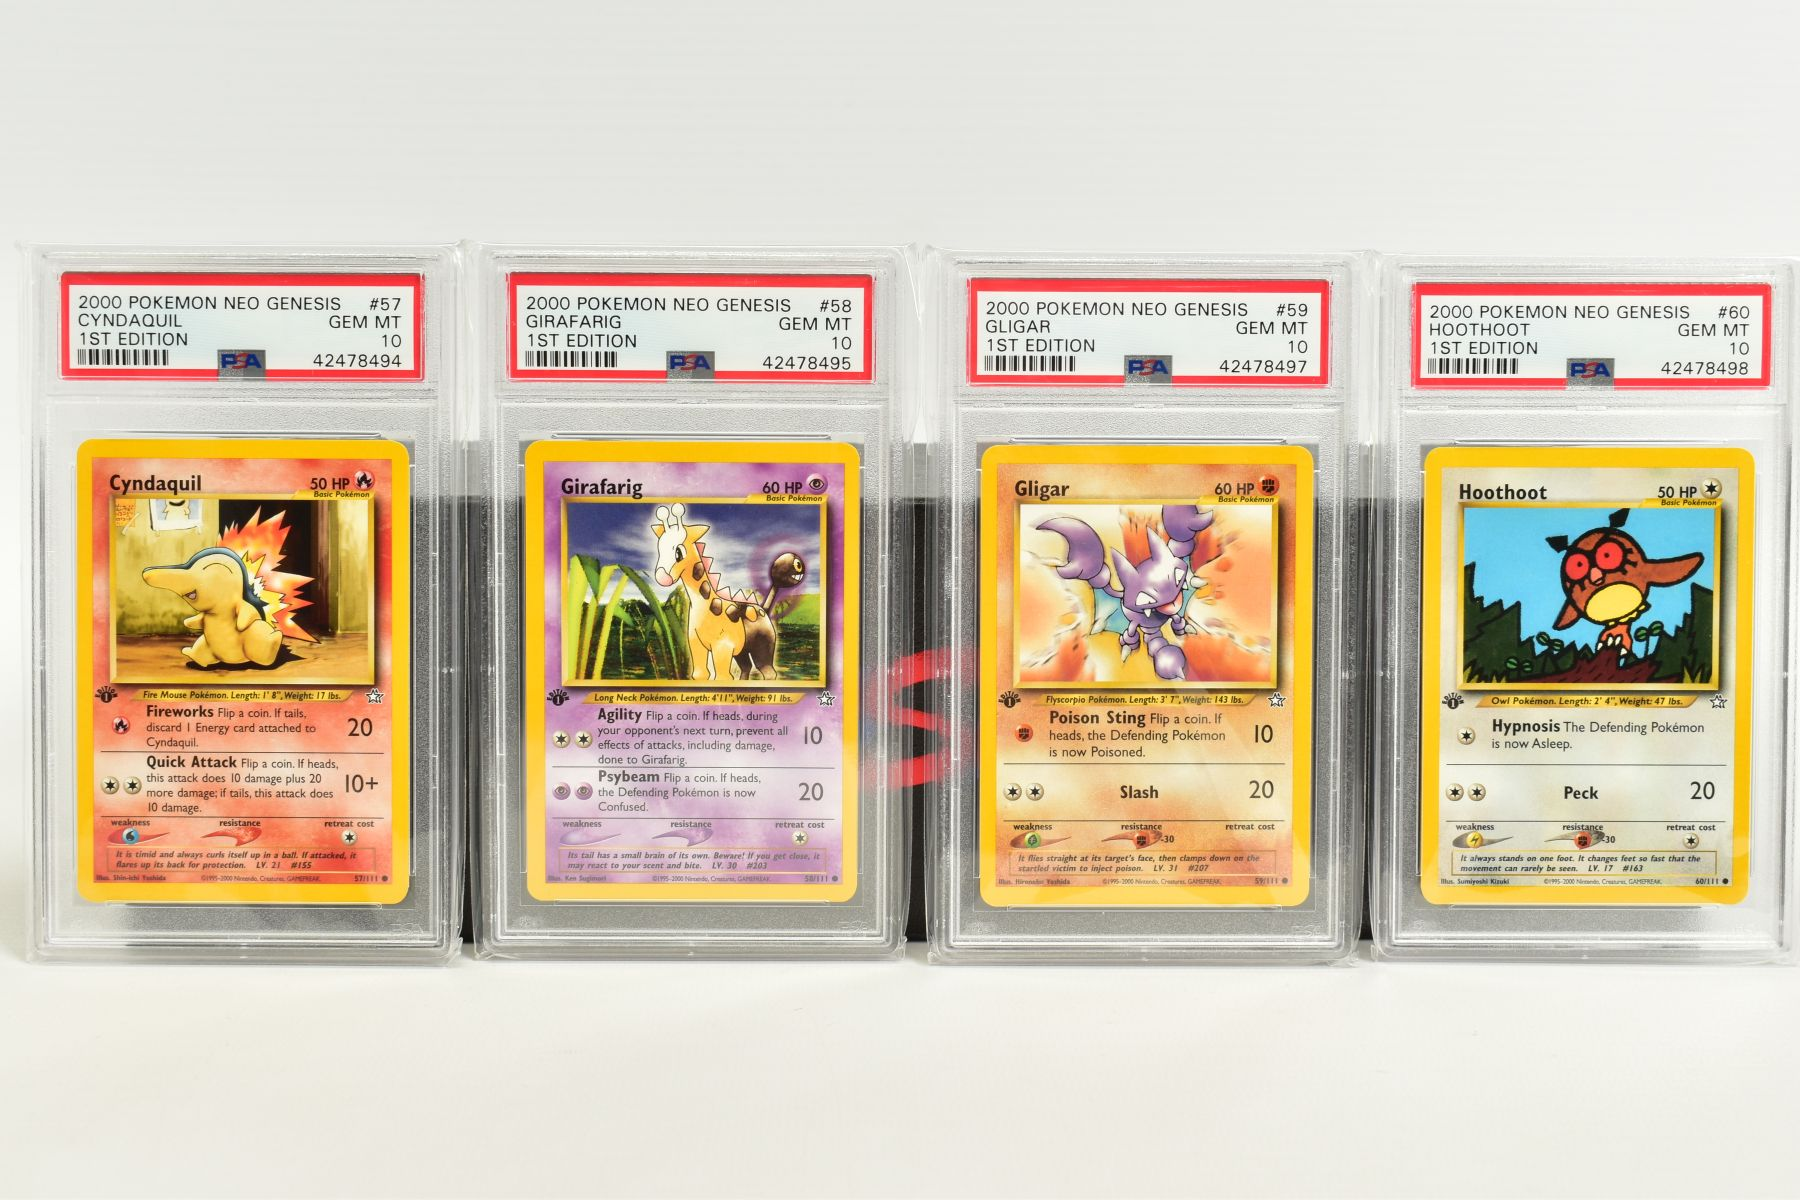 A QUANTITY OF PSA GRADED POKEMON 1ST EDITION NEO GENESIS SET CARDS, all are graded GEM MINT 10 and - Image 11 of 24